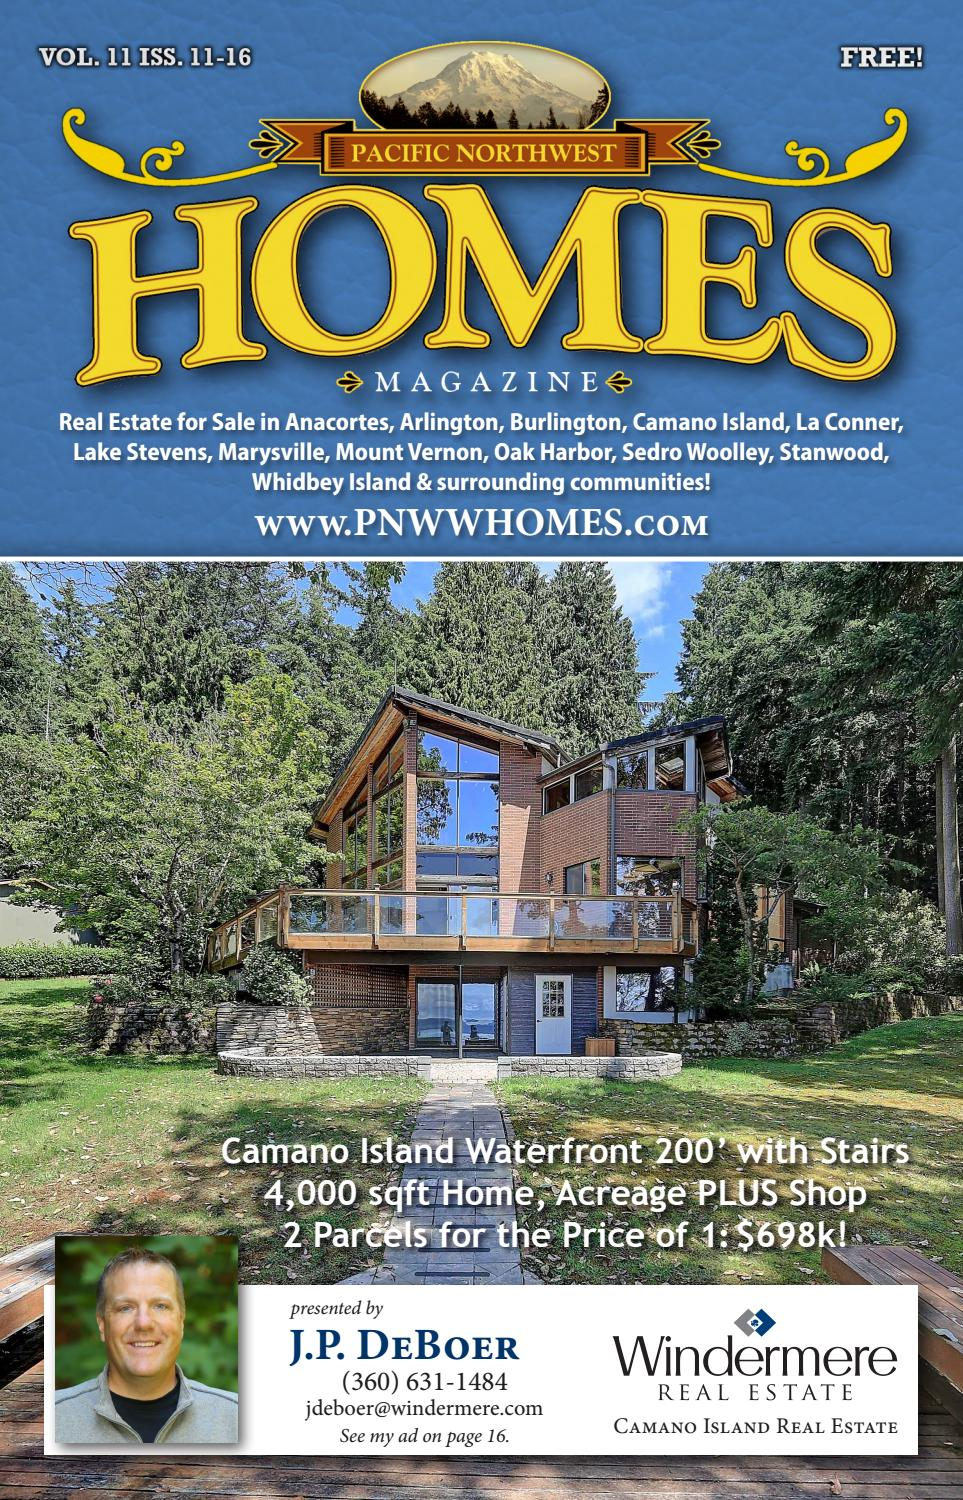 Pacific Nw Homes Skagit Island Snohomish Issue 11 16 By Pacific Nw Homes Issuu